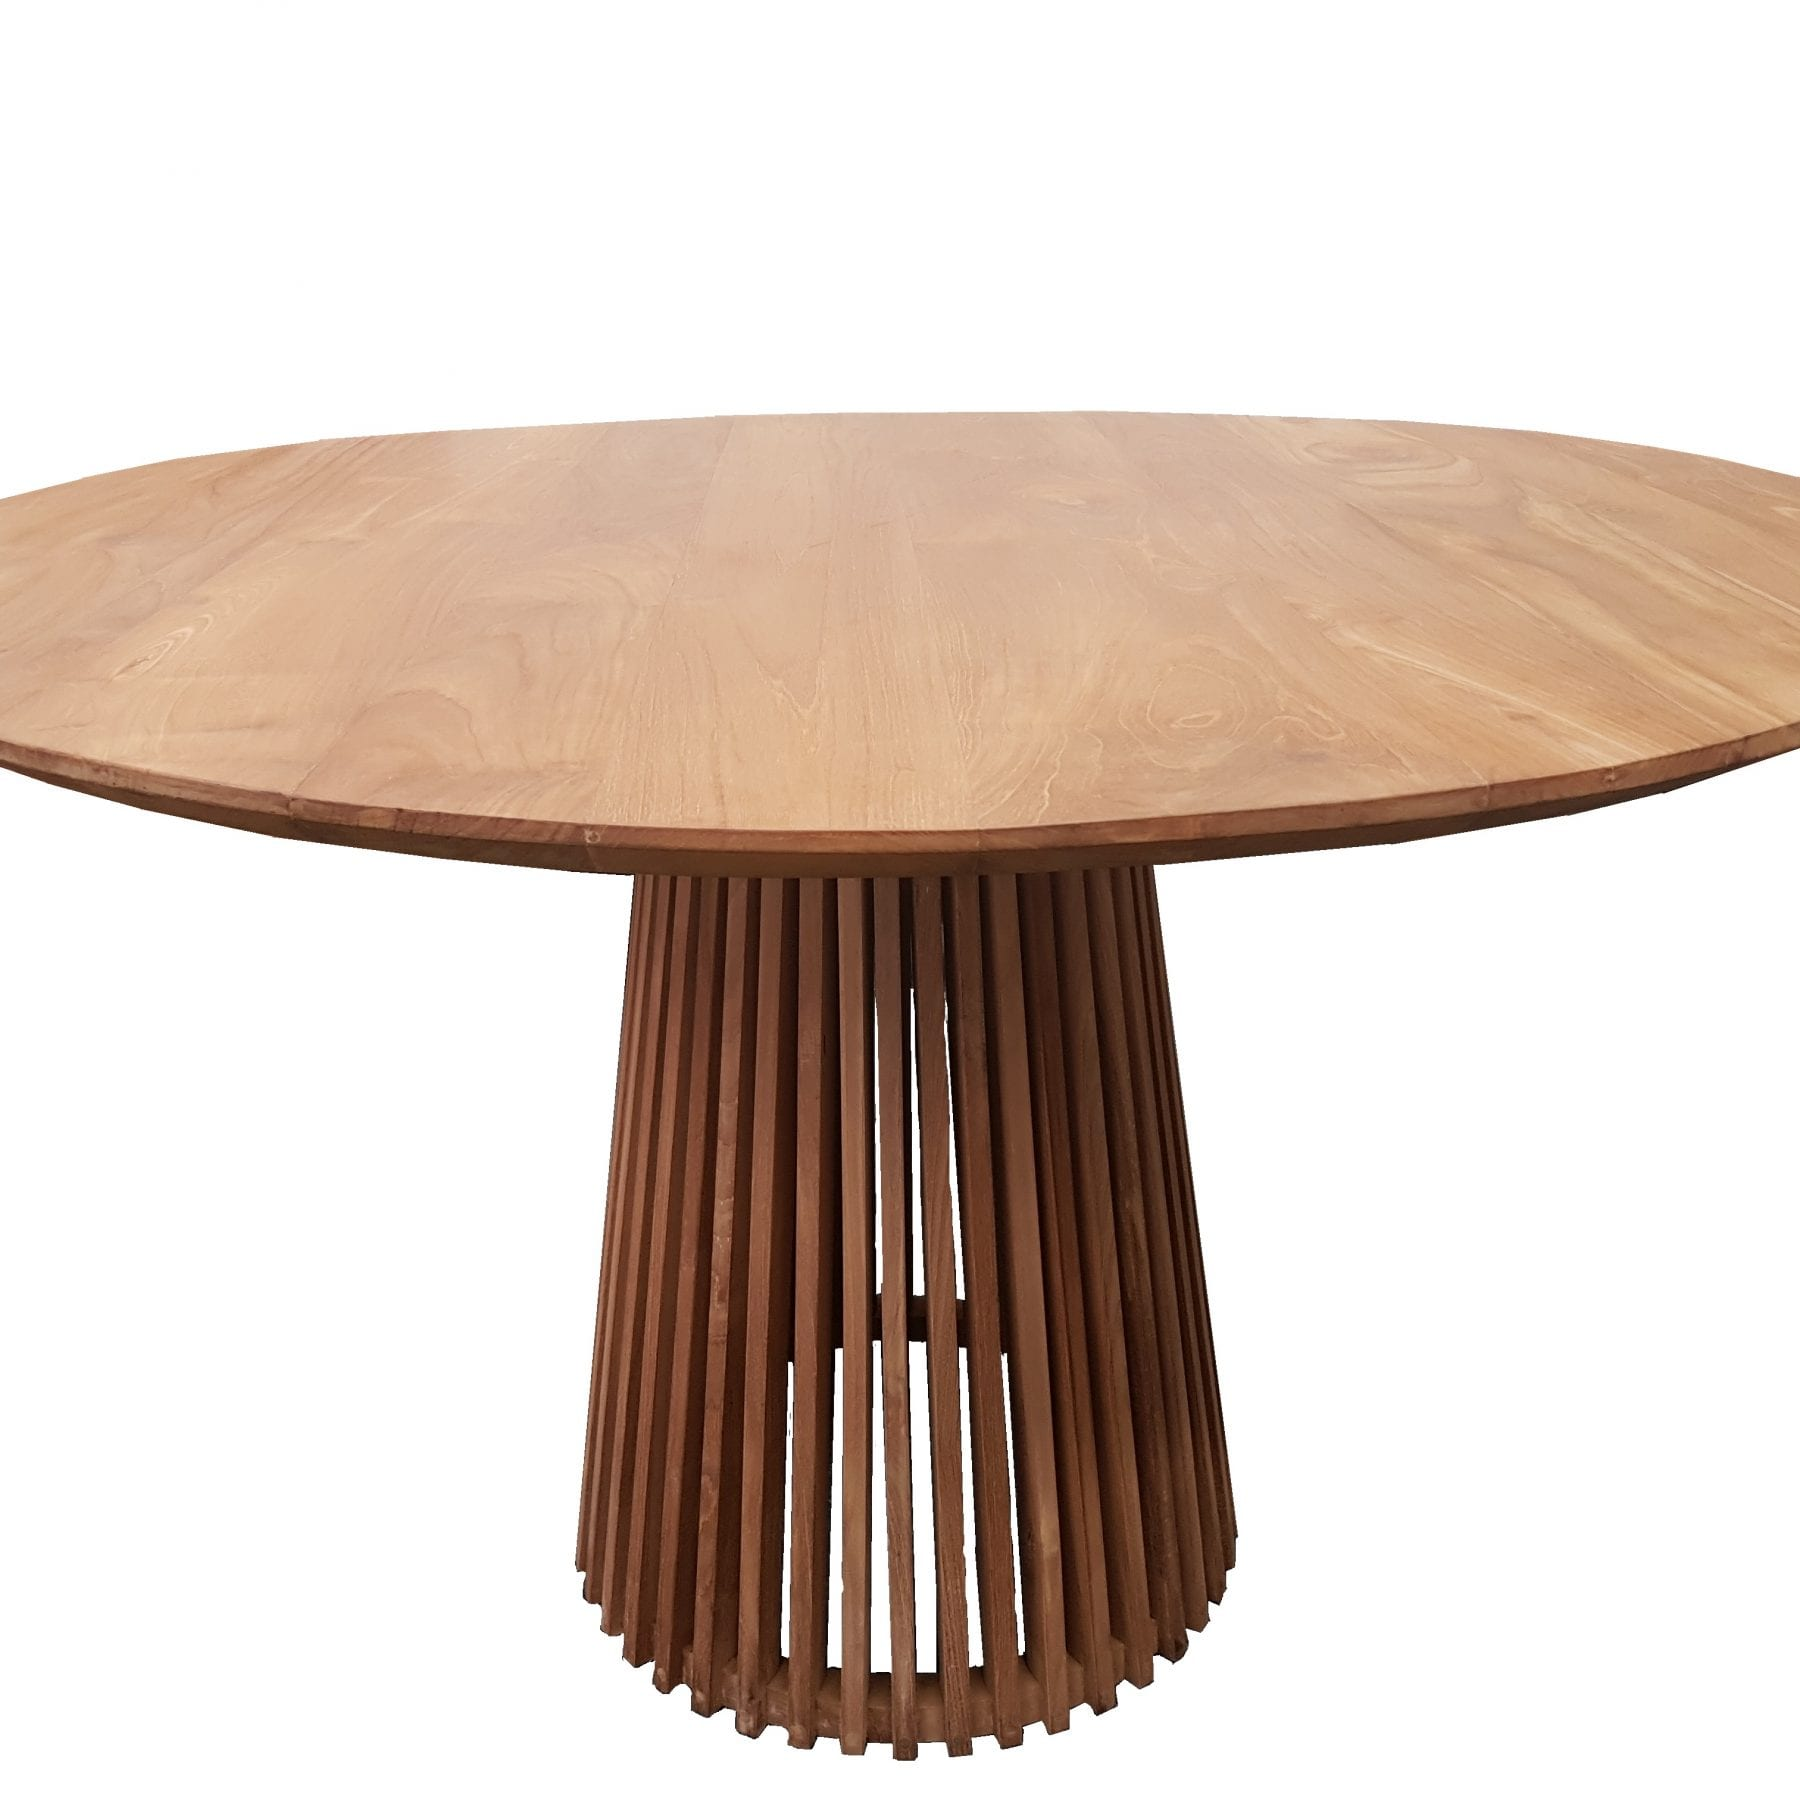 Rujiki Circular Teak Table